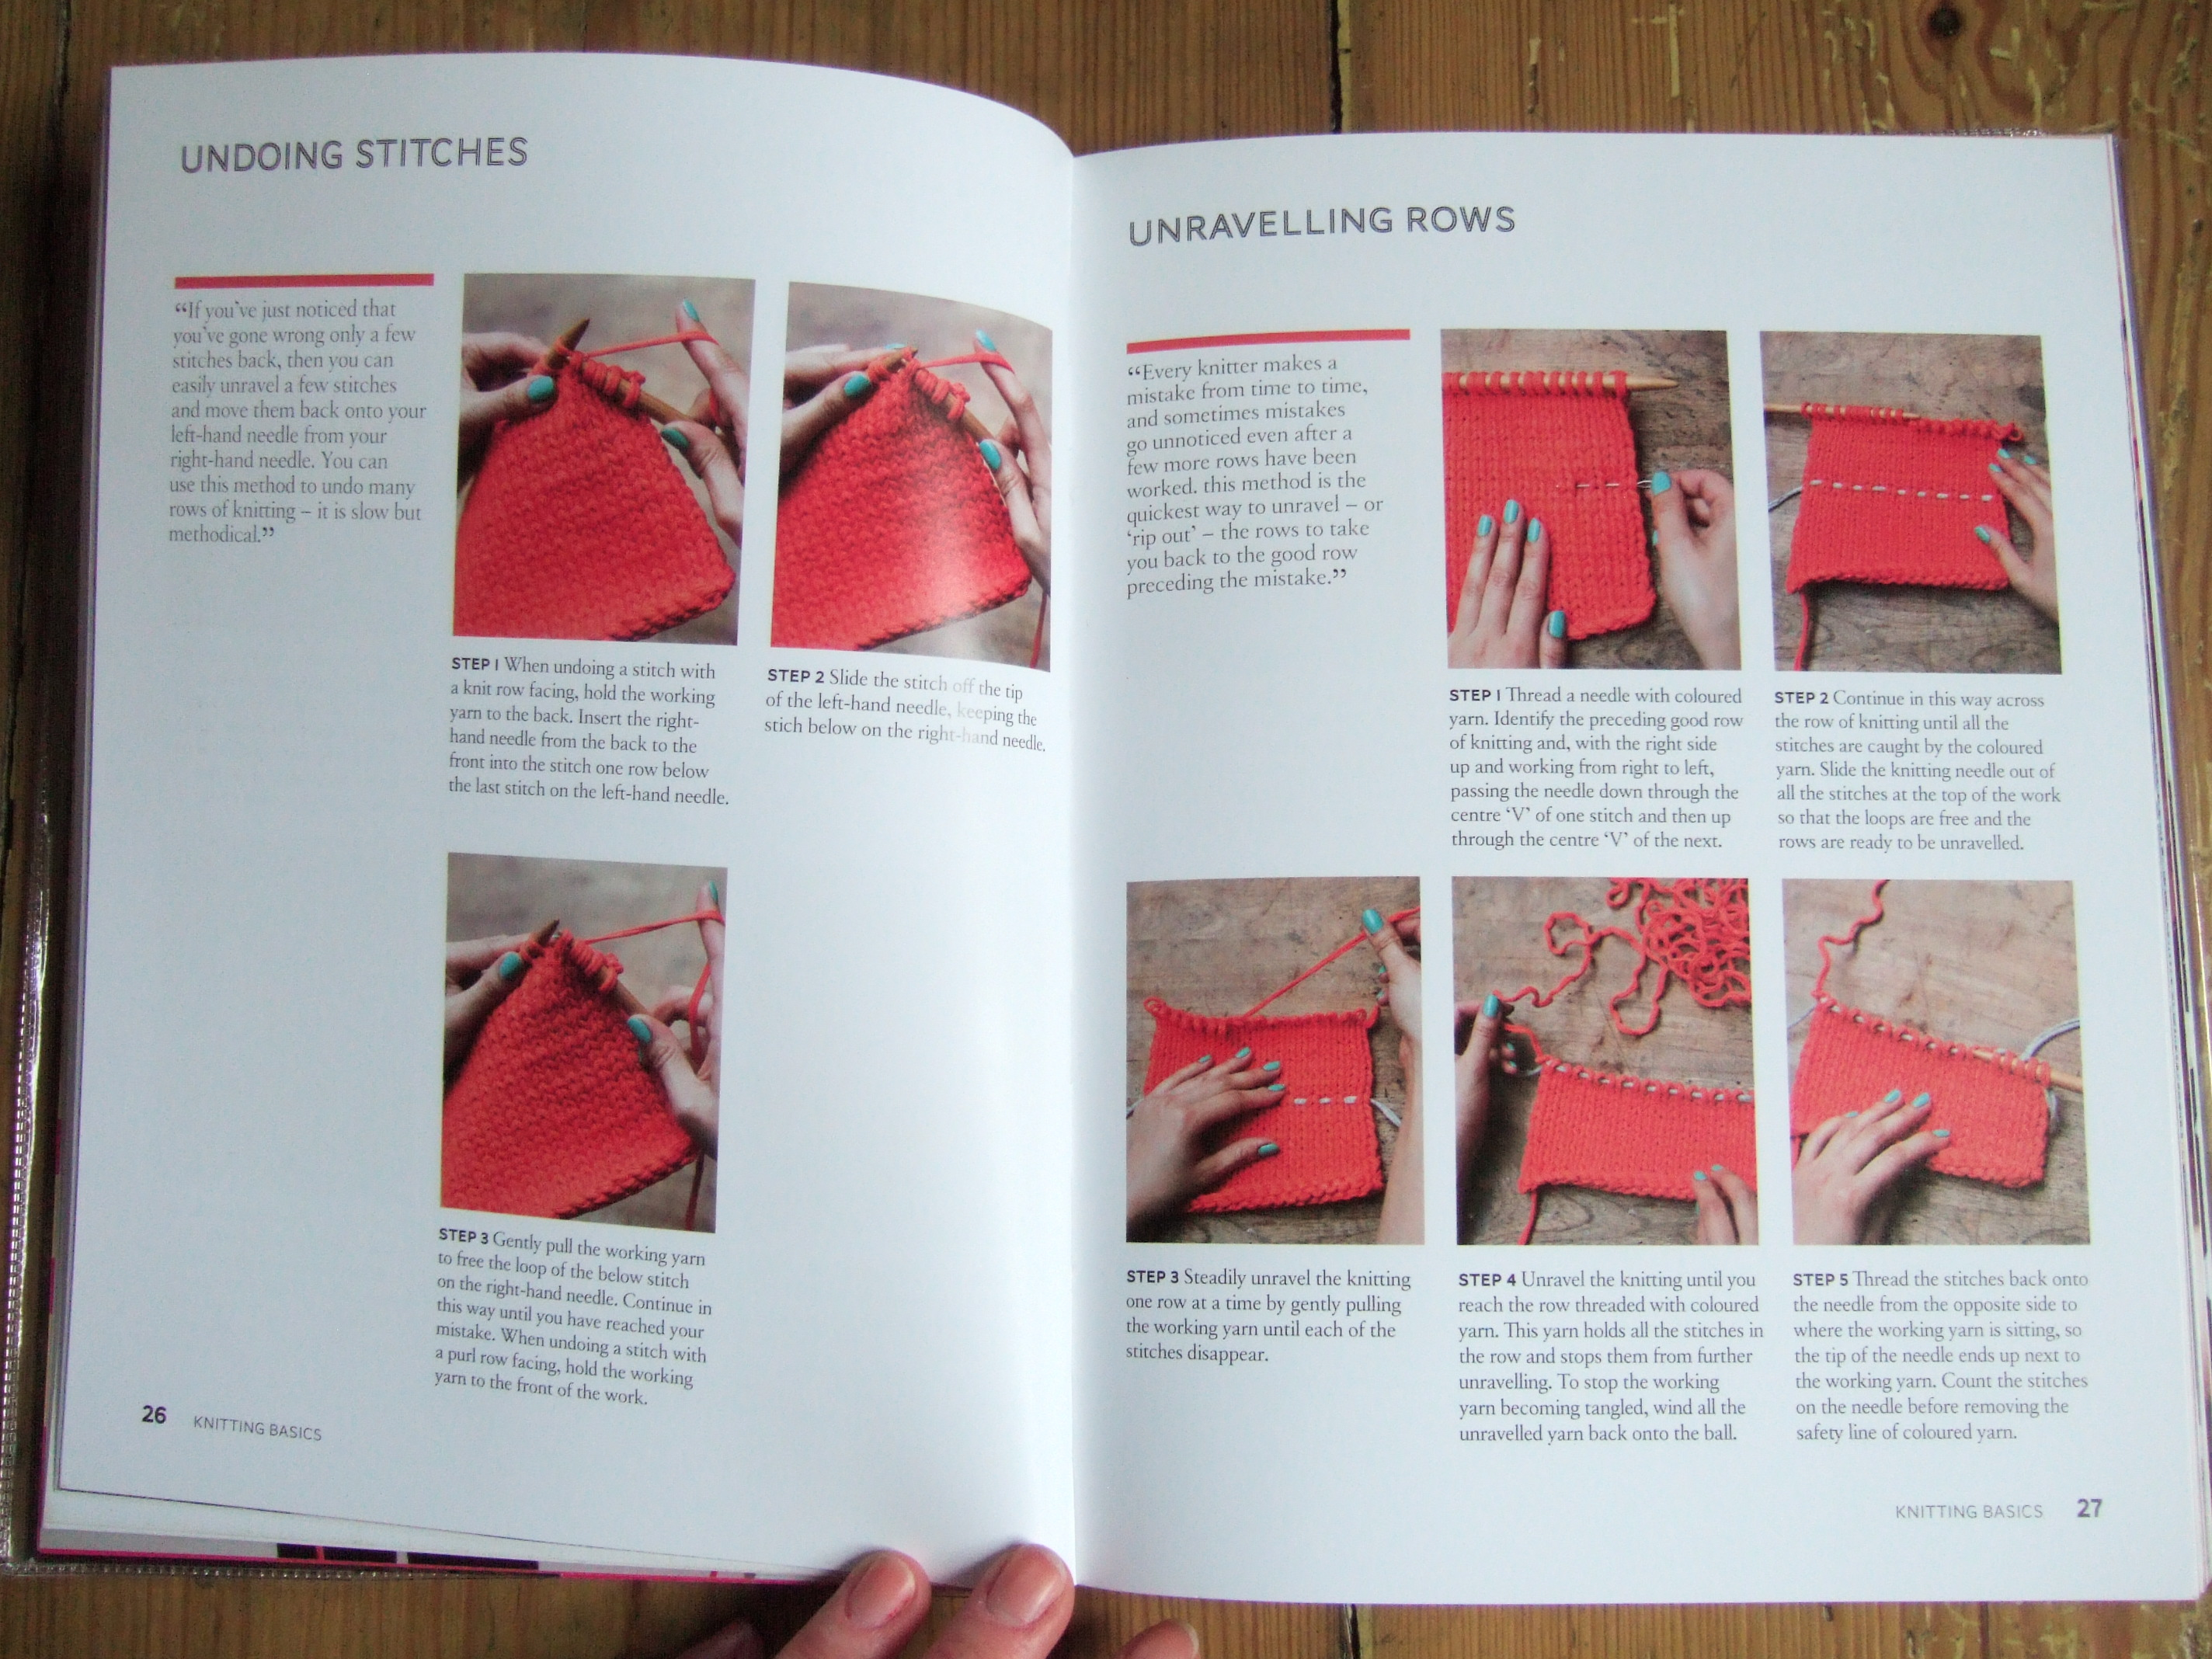 Knitting Basics Book : Book review learn to knit love ivegotknits